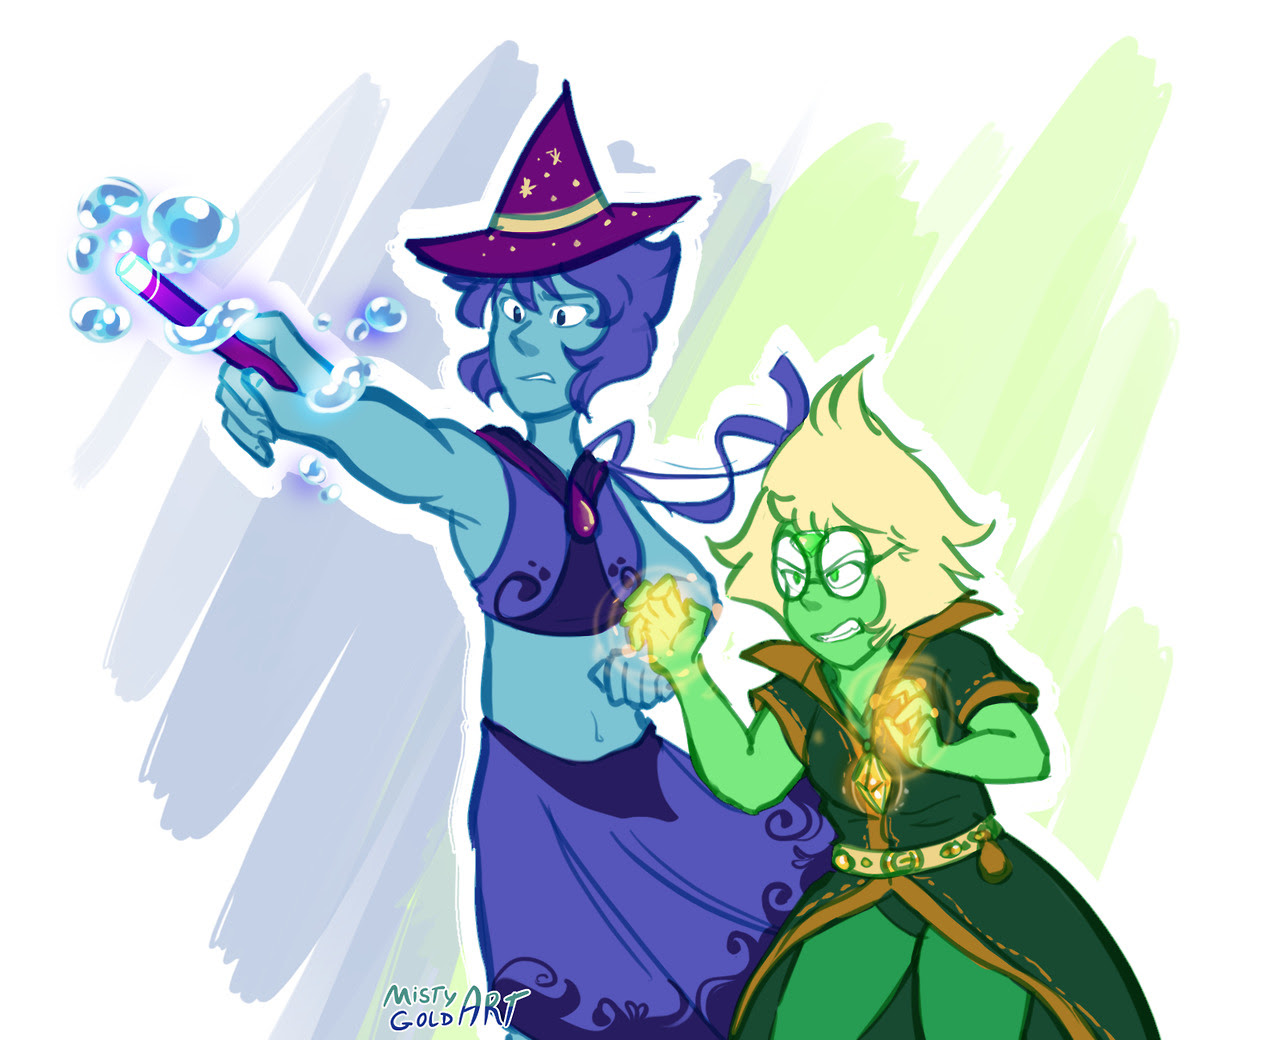 @lapidot-week Day 5 - Costumes/Decorations Lapis Lazuli, the water witch, and Peridot, the alchemist, team up to fight a giant pumpkin (their joint experiment gone wrong) assaulting their...